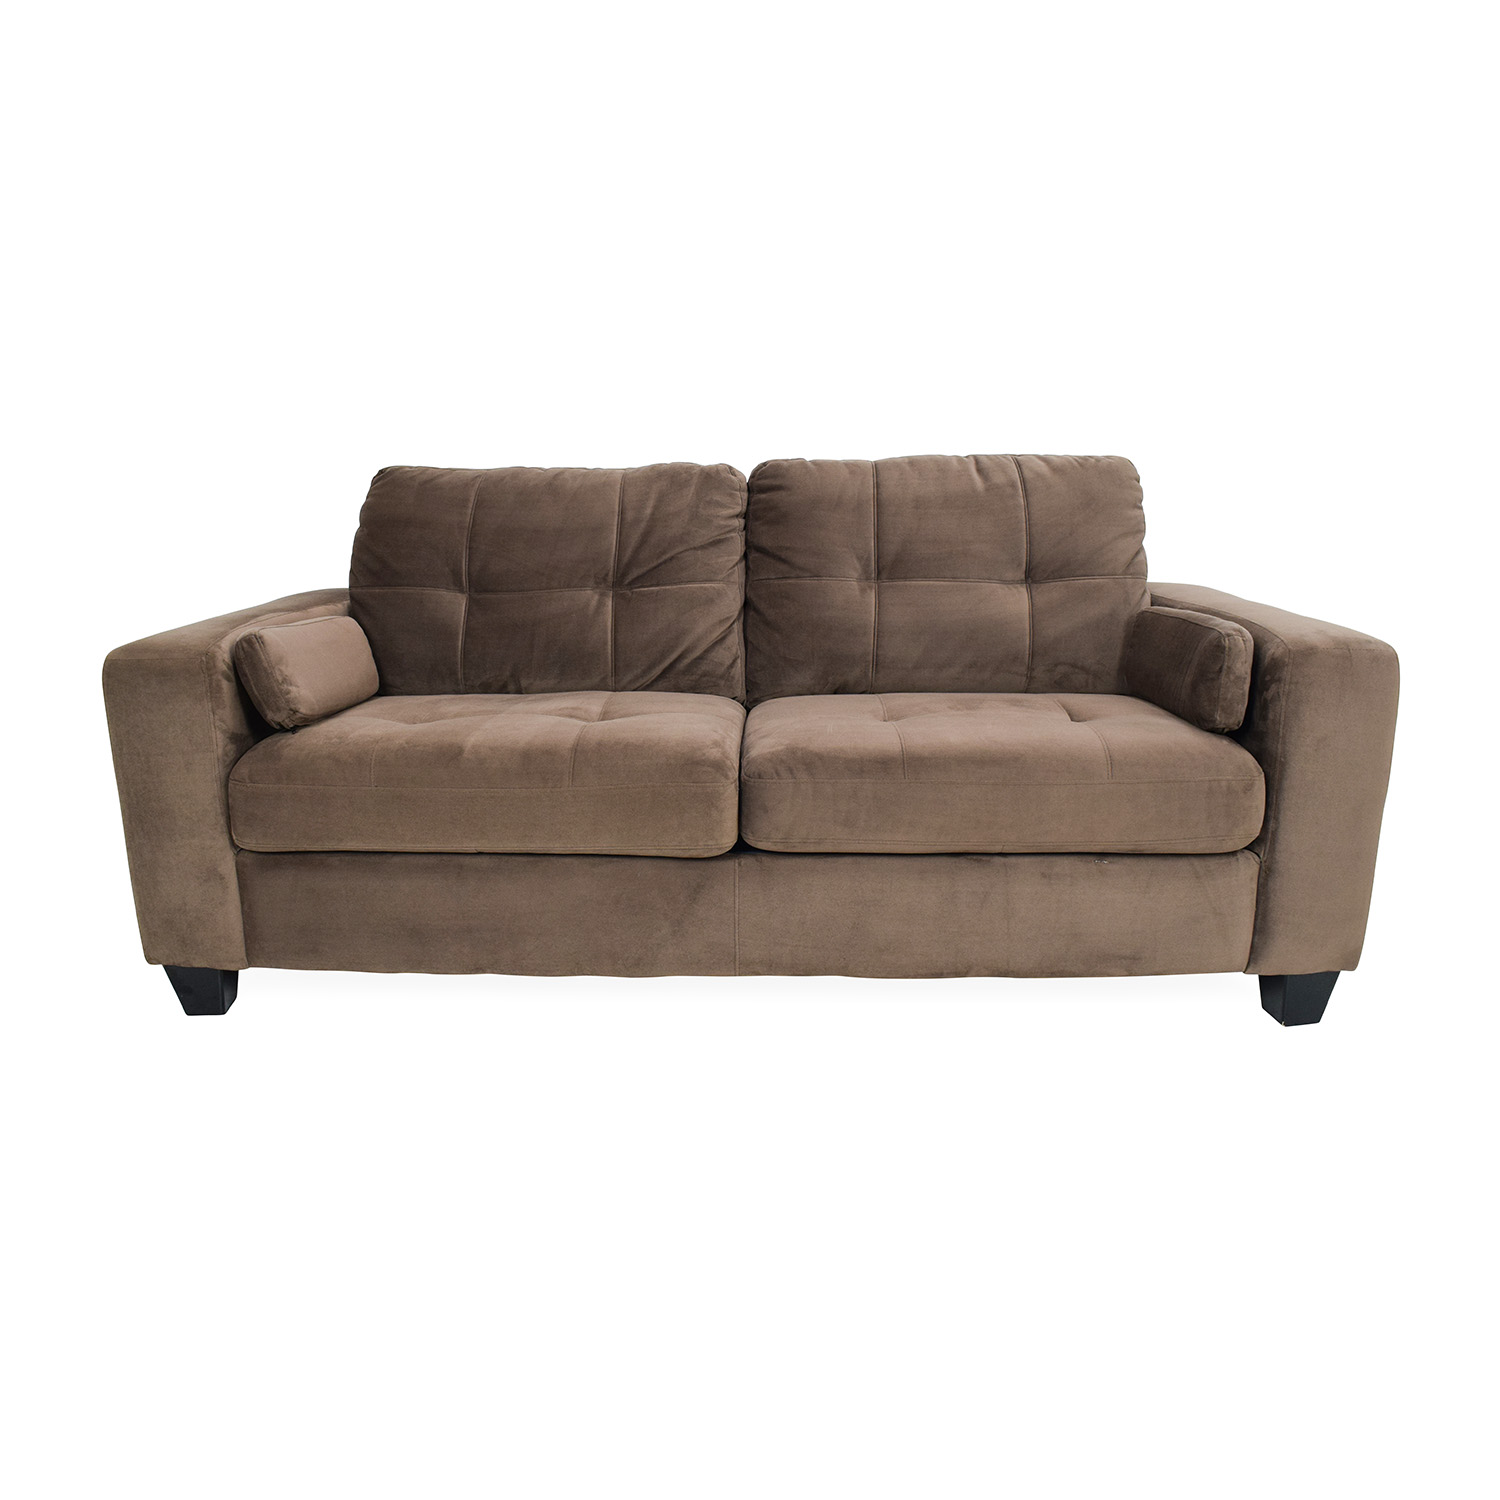 79 off restoration hardware restoration hardware for Second hand schlafsofa